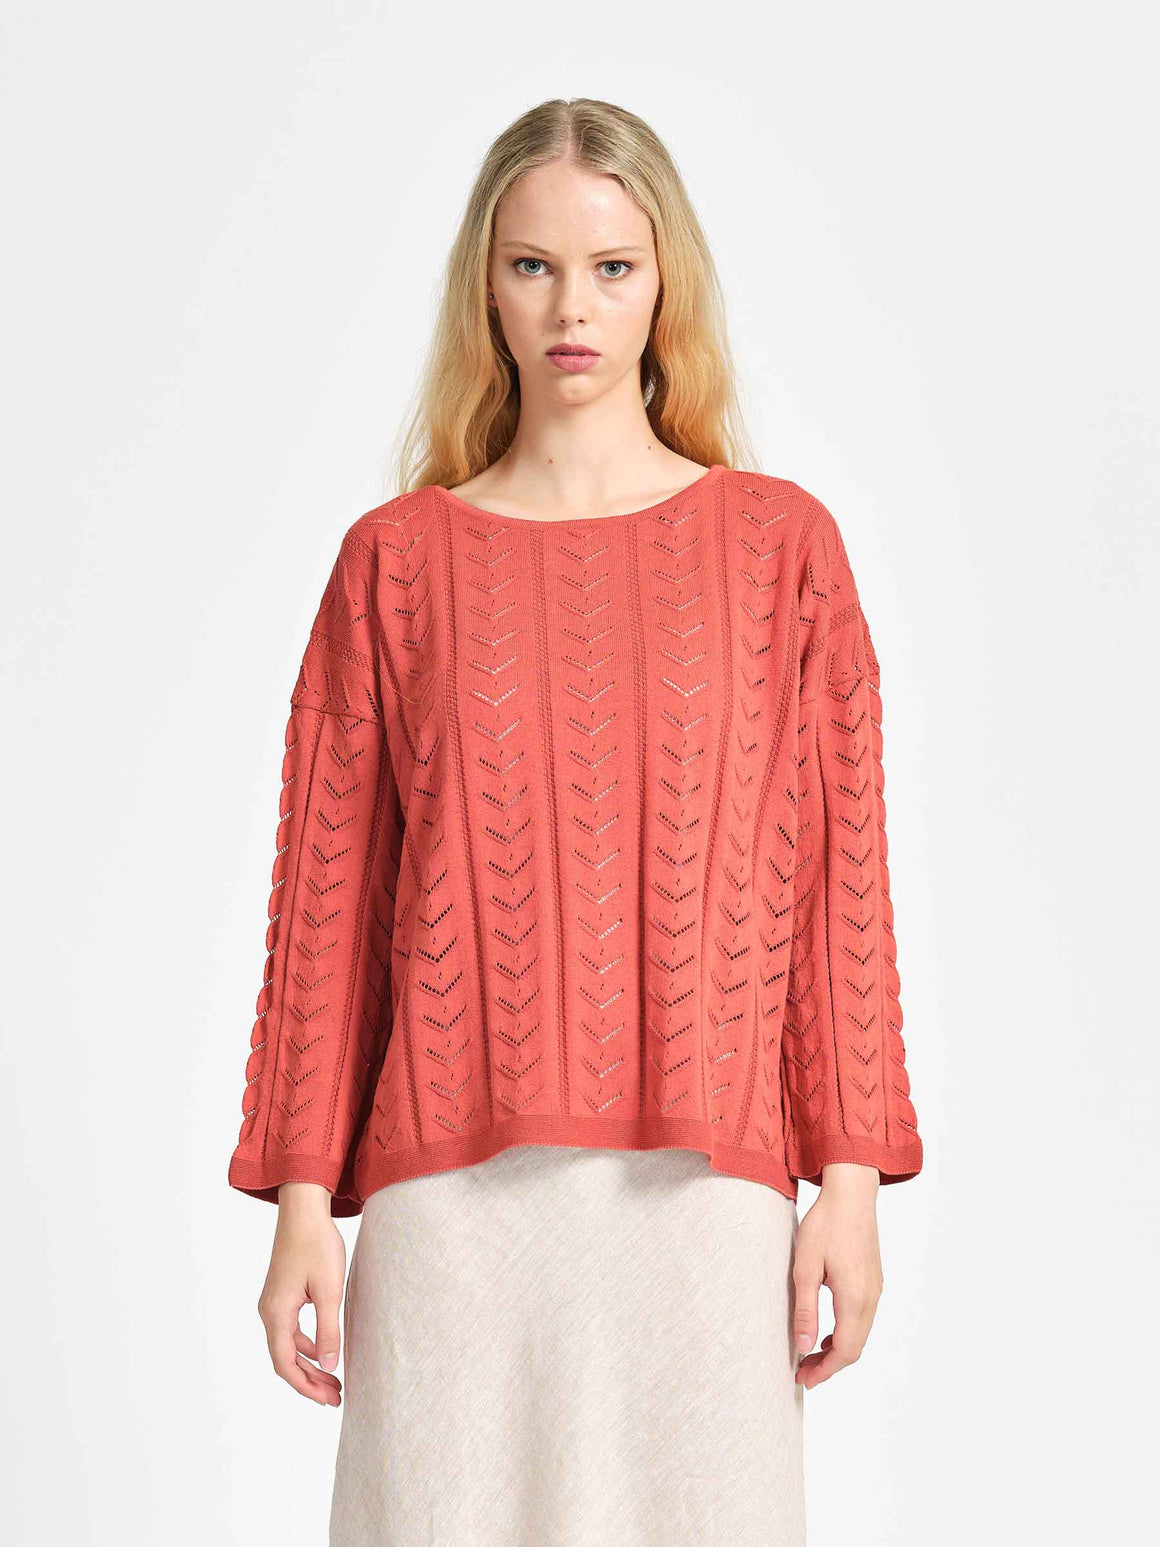 From Florence Top - Tamarillo | Shop online | NZ Made knitwear